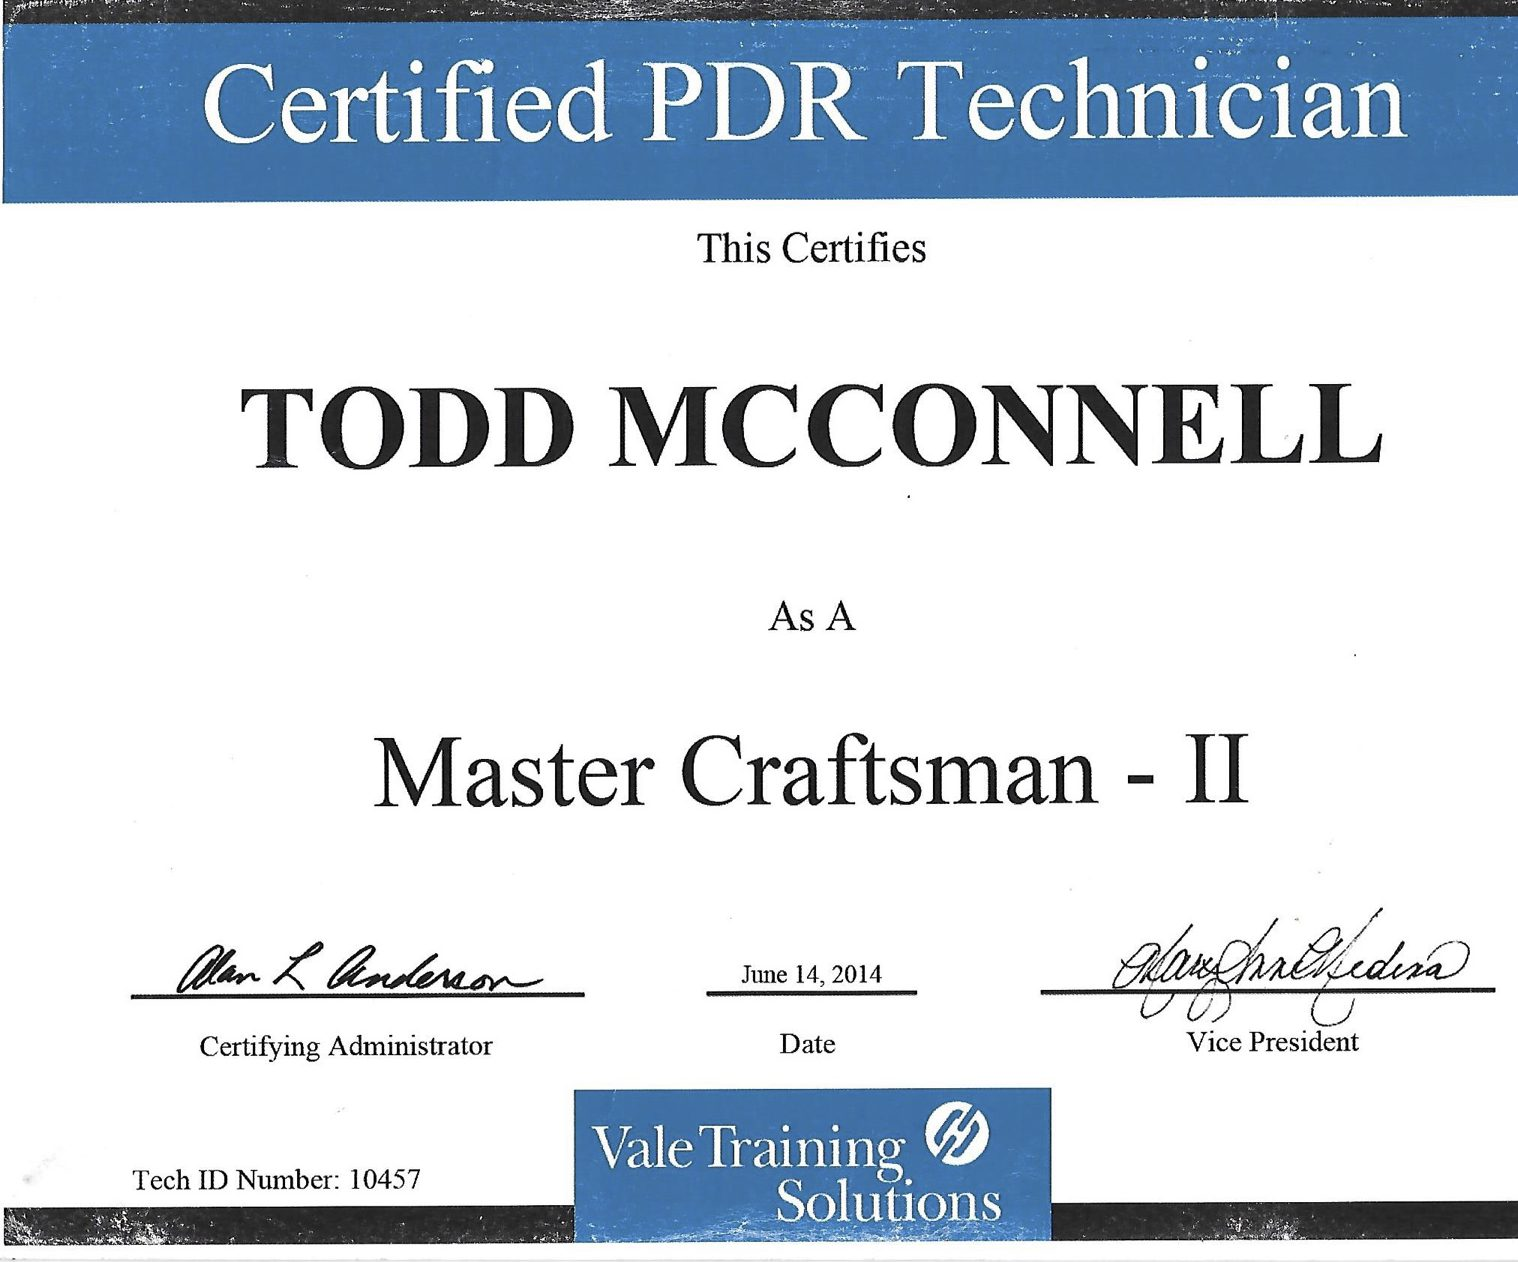 Todd McConnell Certified PDR Technician